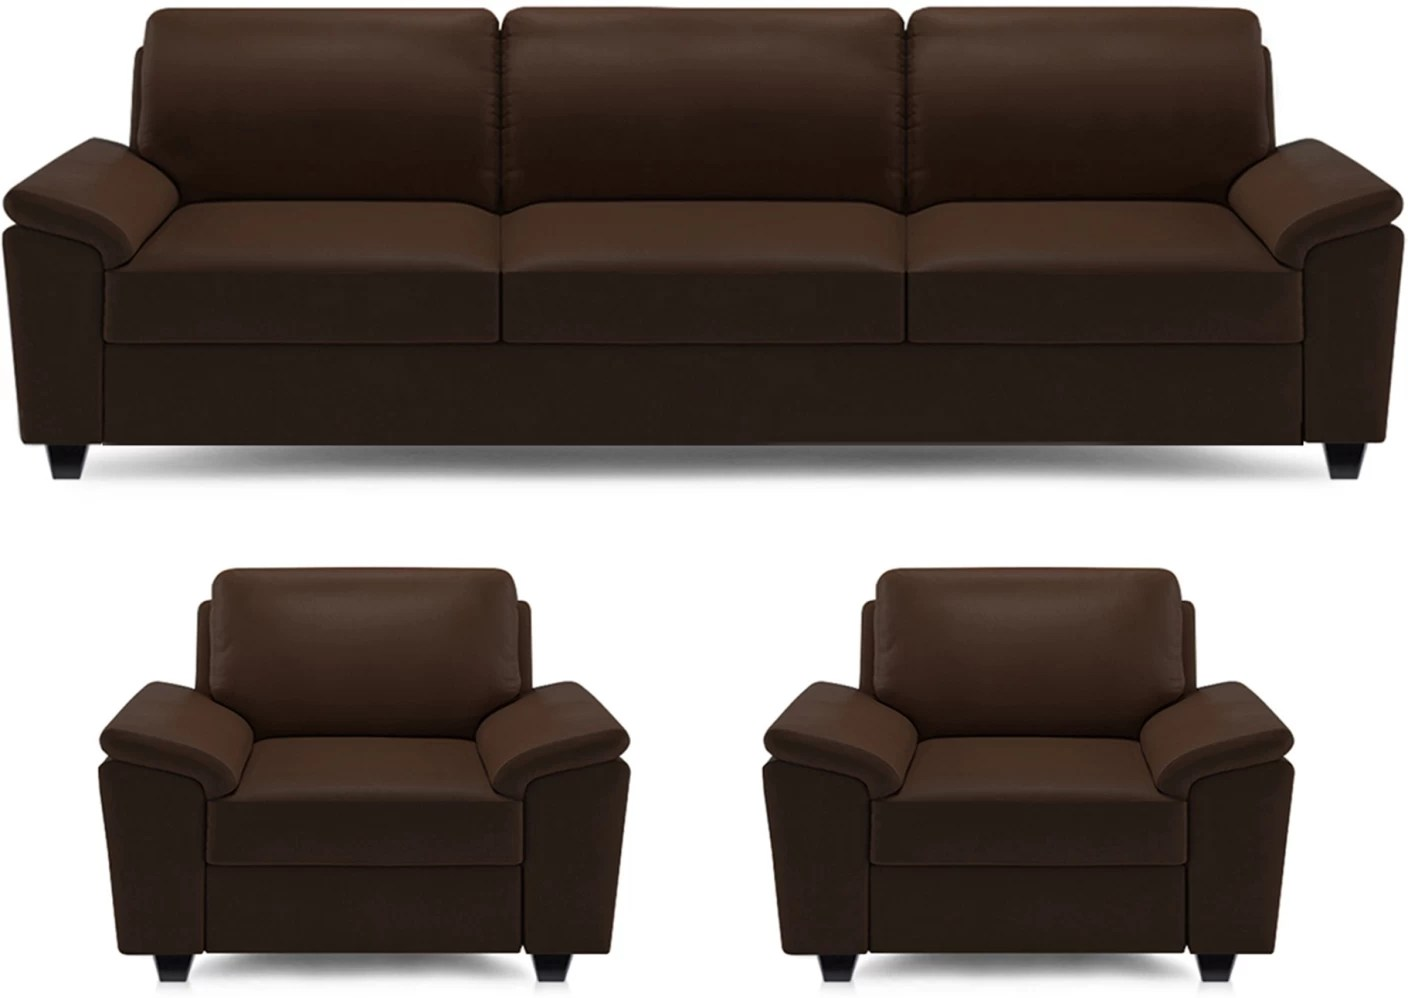 Sofa Set Price In Quetta Dolphin Oxford Leatherette 3 43 1 43 1 Brown Sofa Set Price